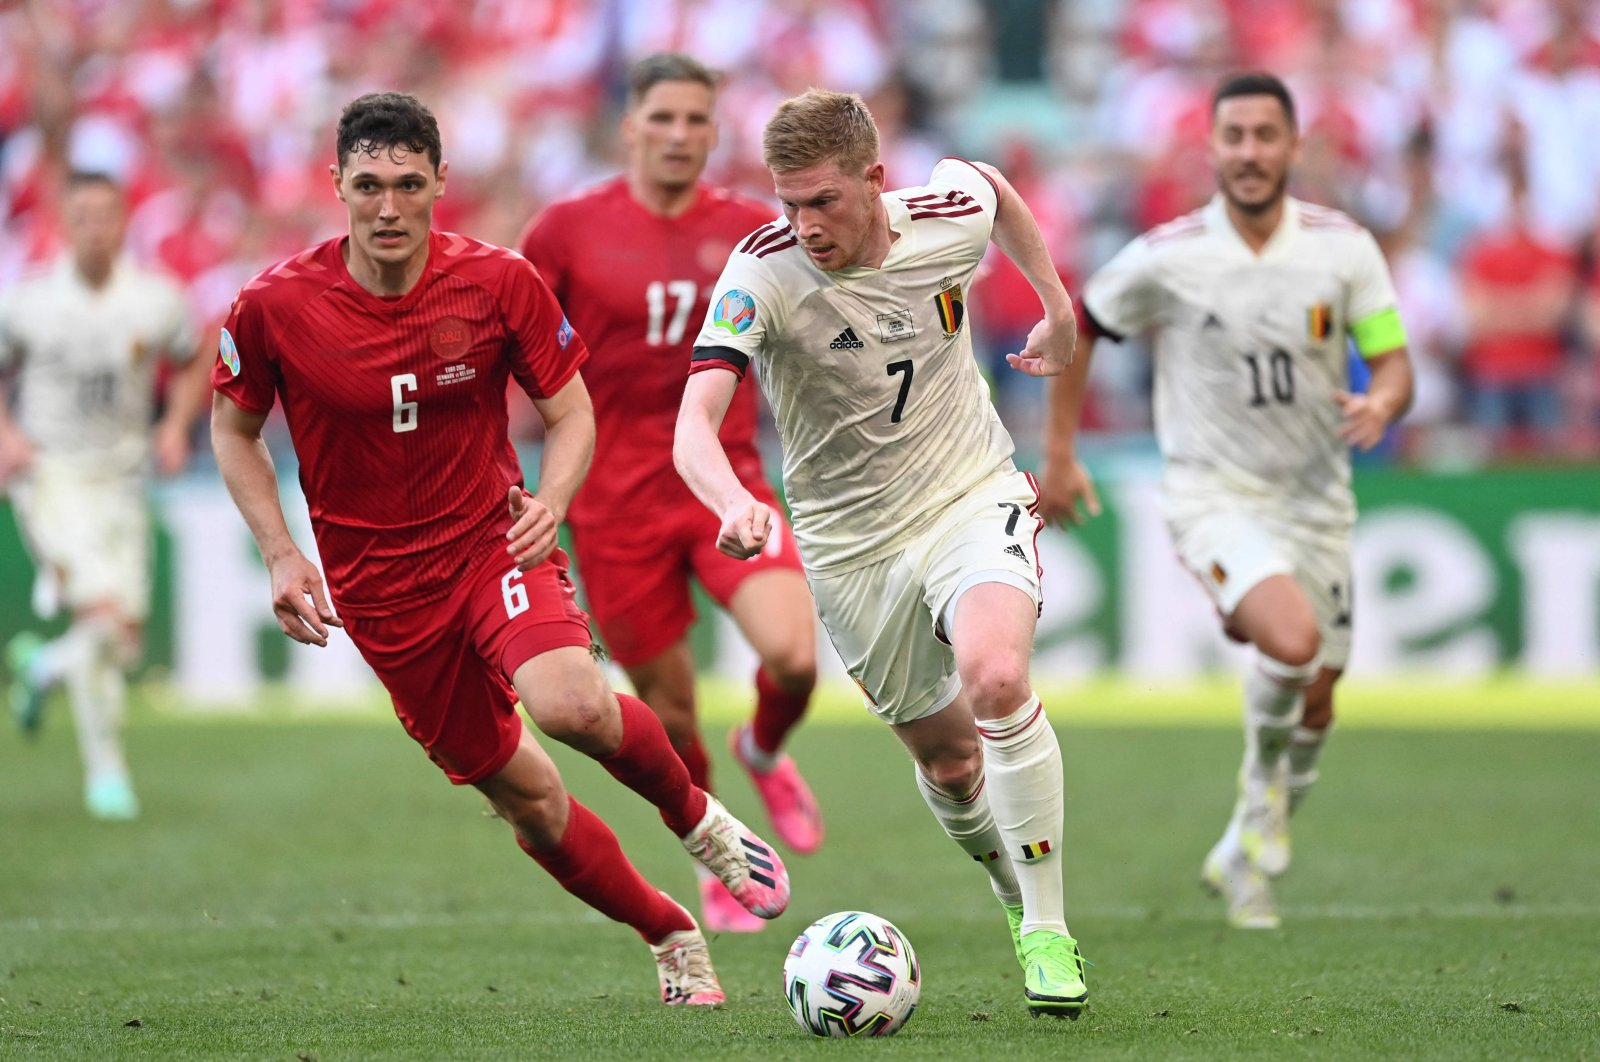 Denmark's defender Andreas Christensen (L) and Belgium's midfielder Kevin De Bruyne vie for the ball during the UEFA EURO 2020 Group B football match between Denmark and Belgium at the Parken Stadium in Copenhagen on June 17, 2021. (AFP Photo)